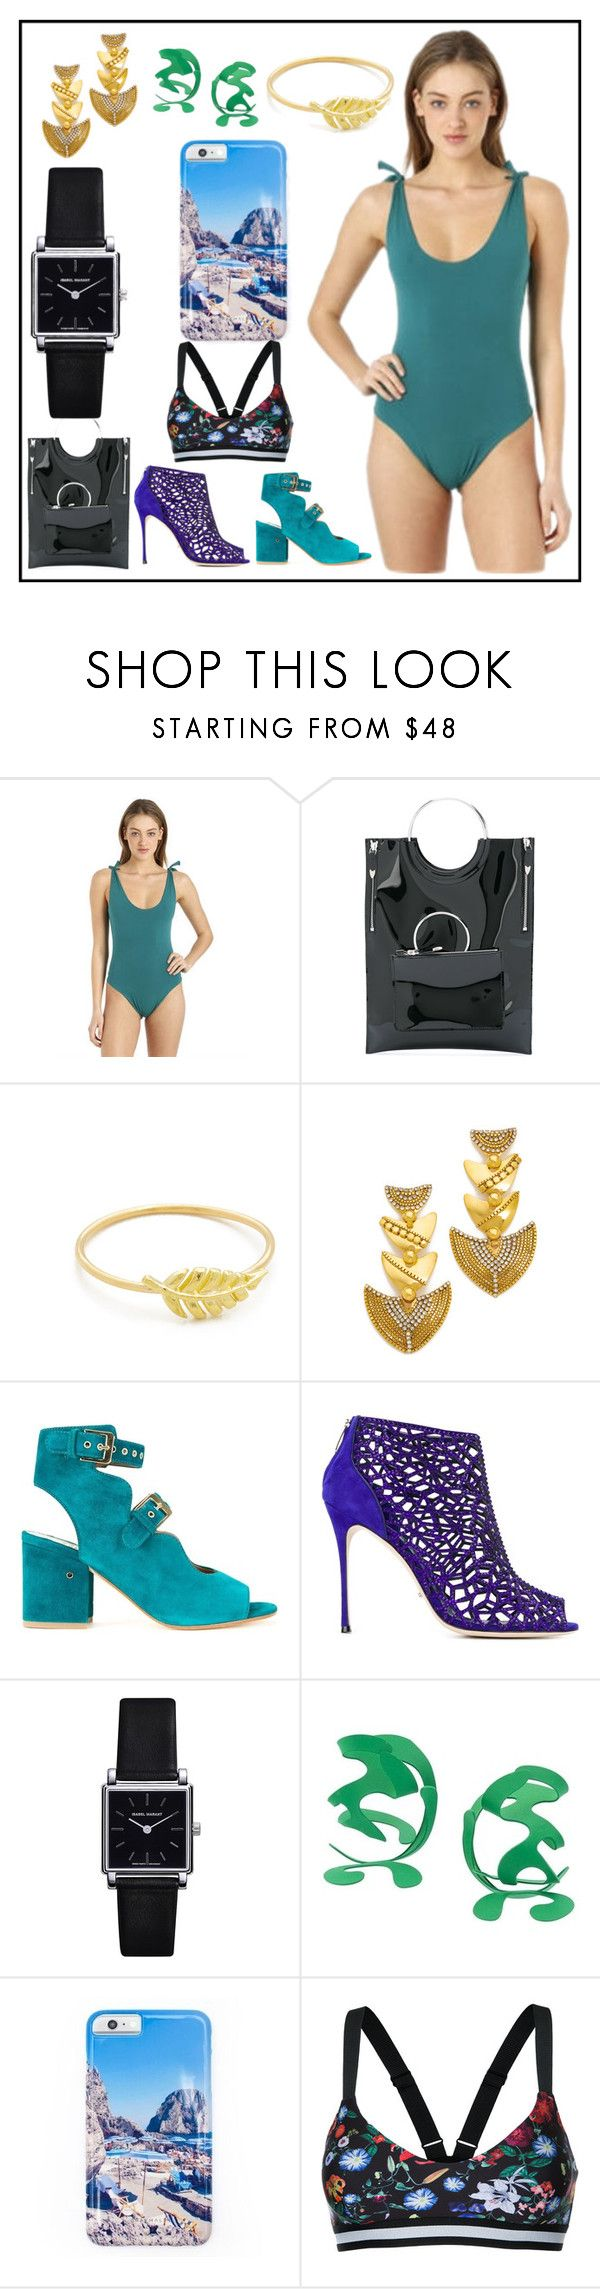 """""""glossy fashion sale"""" by denisee-denisee ❤ liked on Polyvore featuring Isole & Vulcani, Toga, Jennifer Meyer Jewelry, Erickson Beamon, Laurence Dacade, Sergio Rossi, Isabel Marant, Rosie Assoulin, Gray Malin and The Upside"""